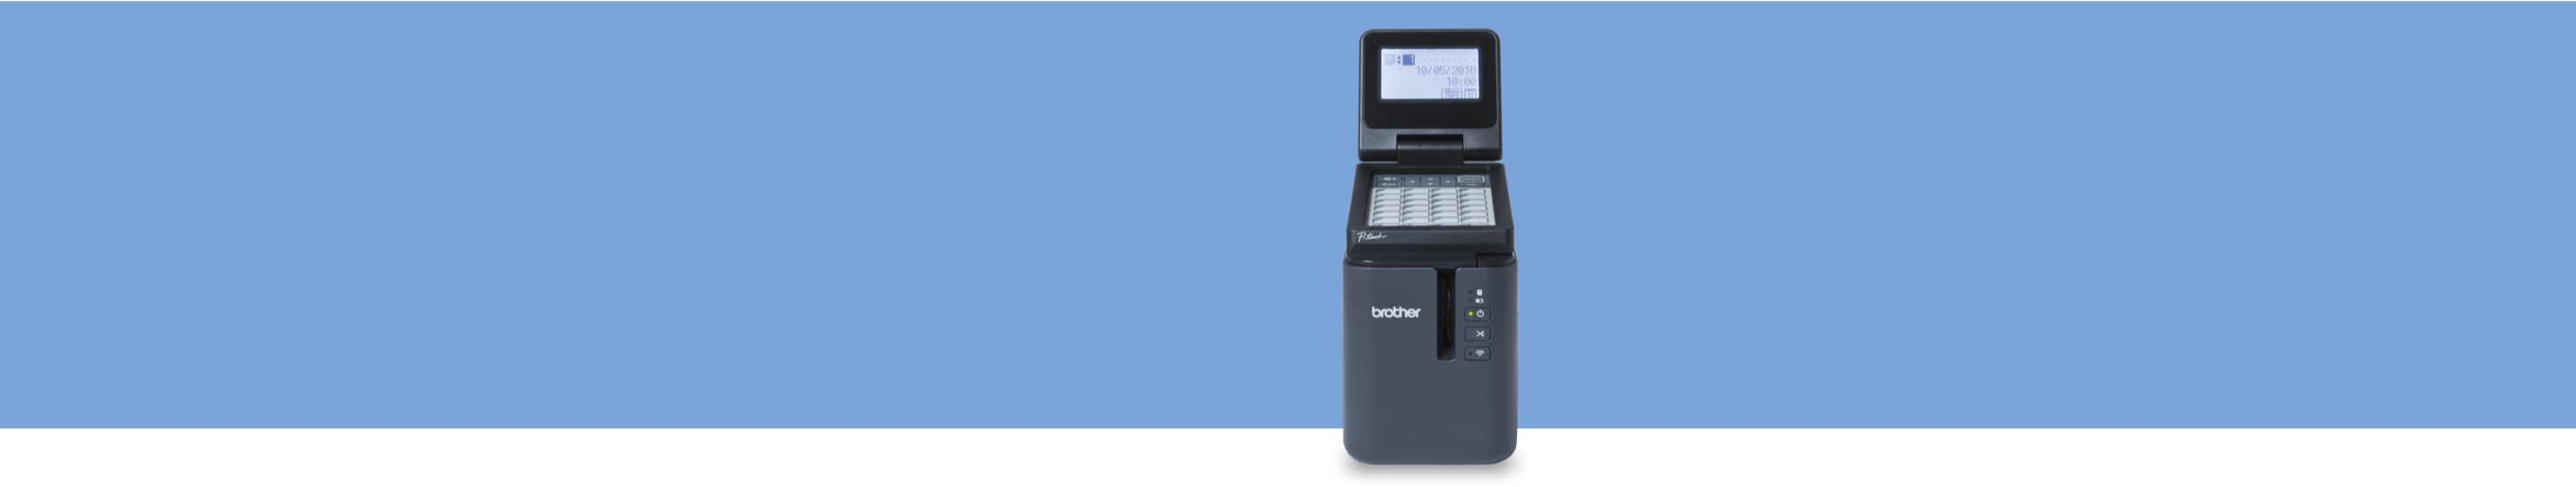 office and industrial labeller on a blue background